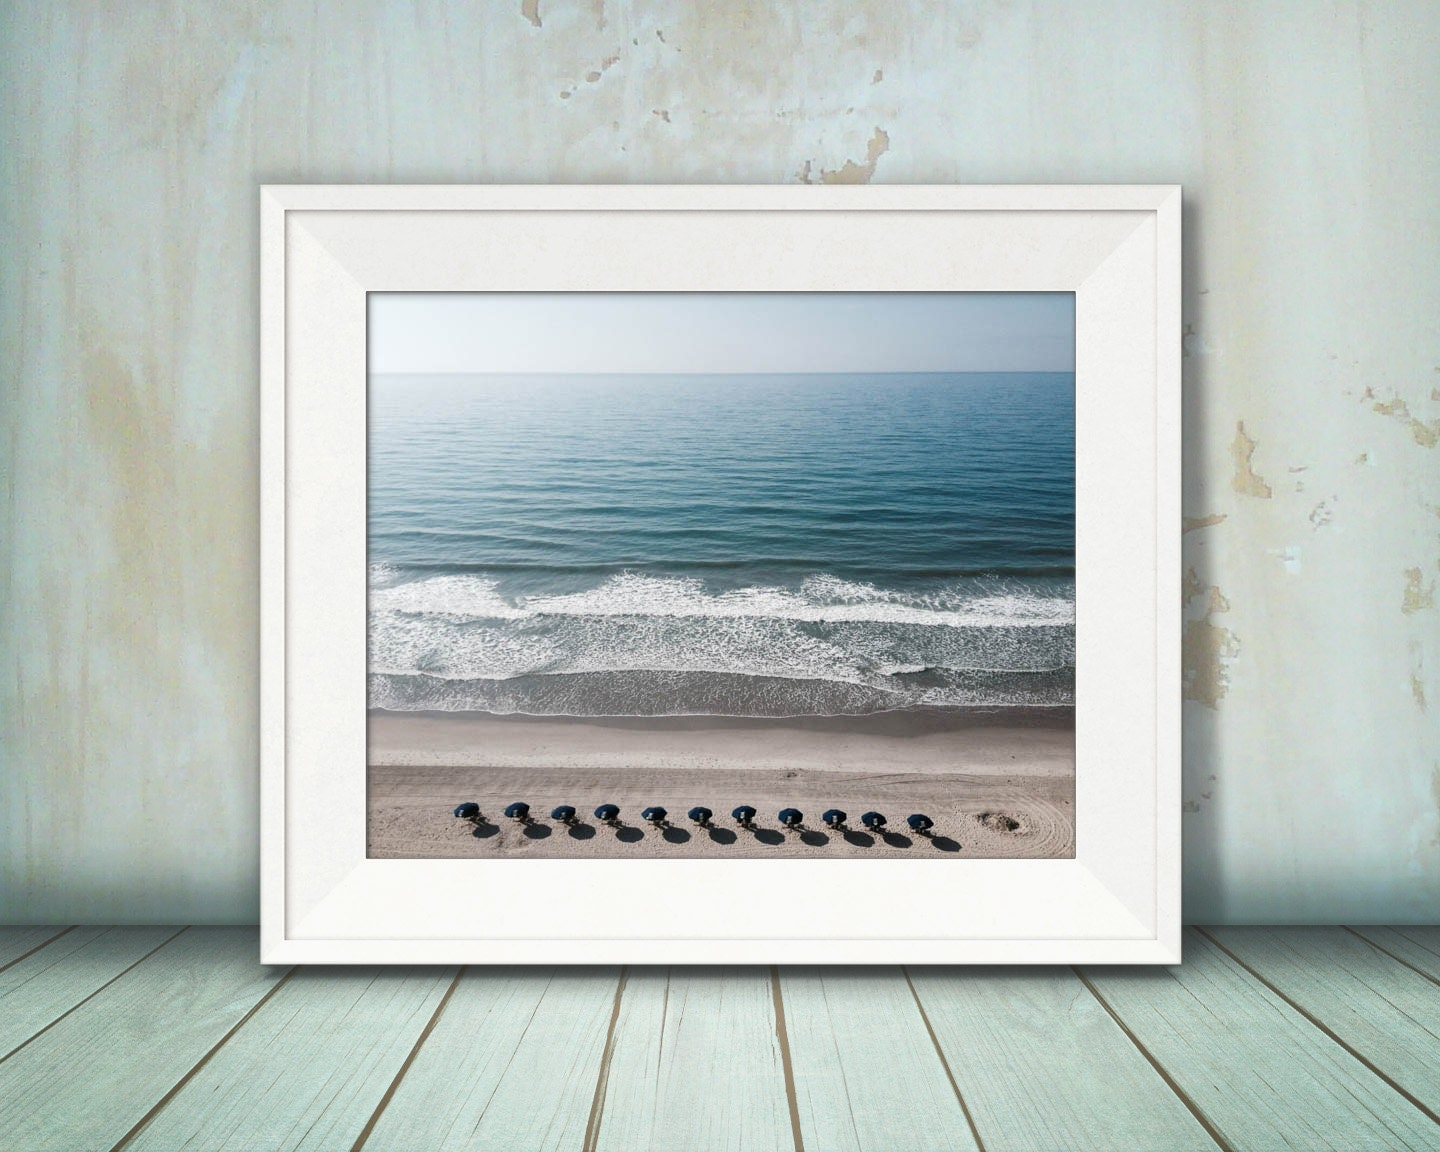 Coastal Wall Decor: Myrtle Beach Photography Beach Wall Art Beach Theme Decor